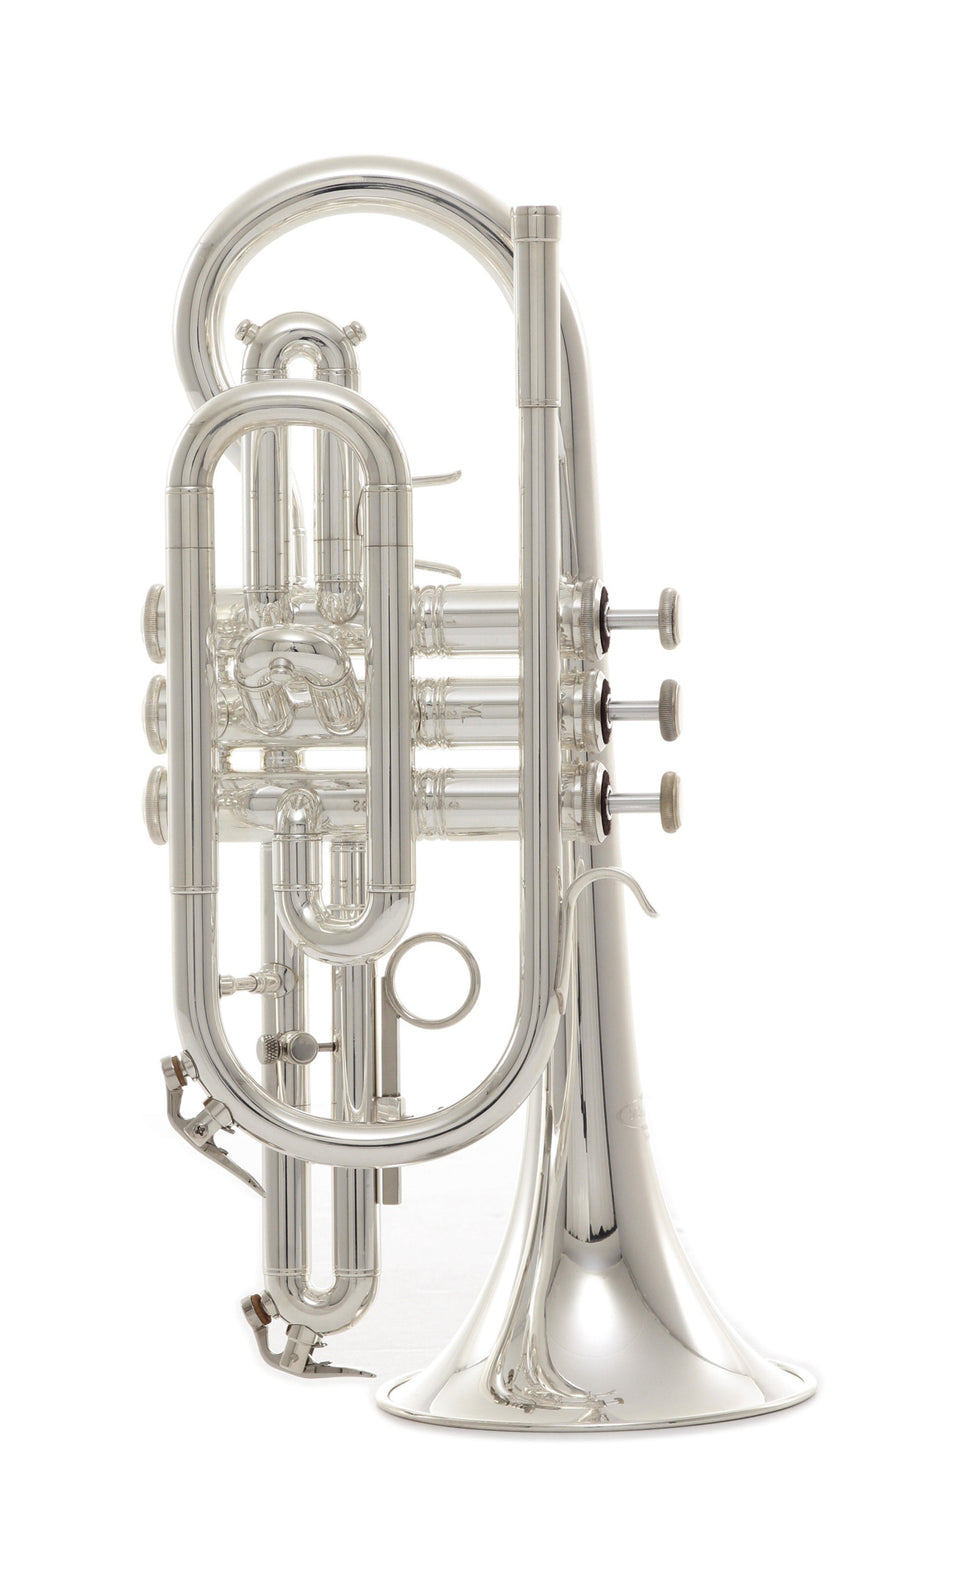 Schagerl K-450S Academica Student Cornet - Silver Plated